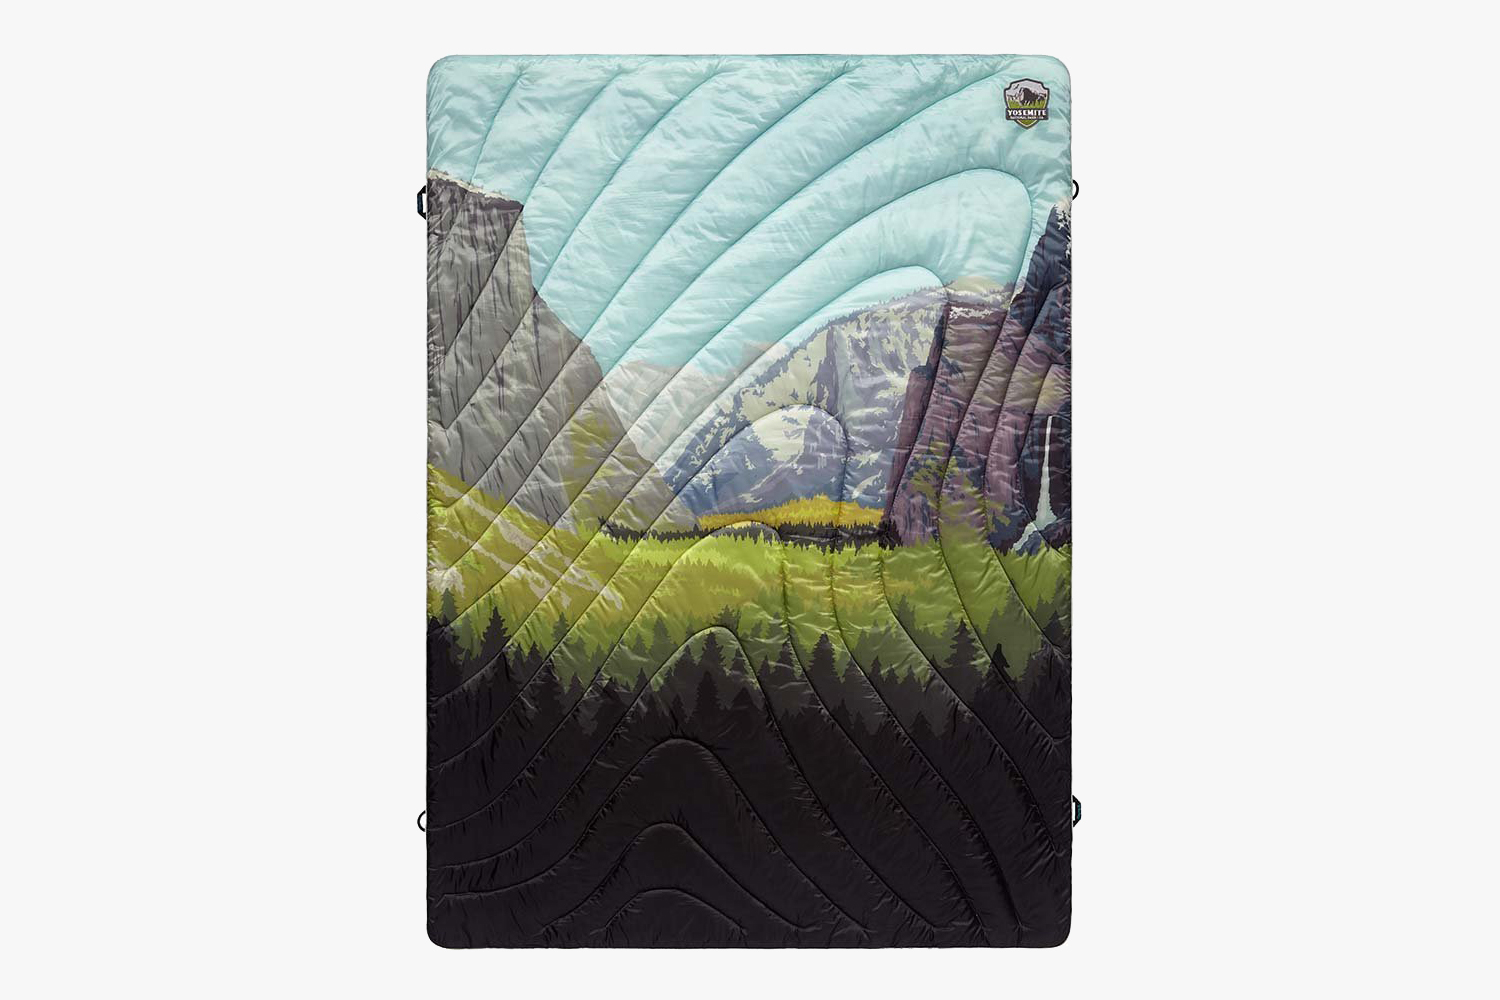 The Original Puffy Blanket Yosemite Edition Gets In-Touch With The Wild